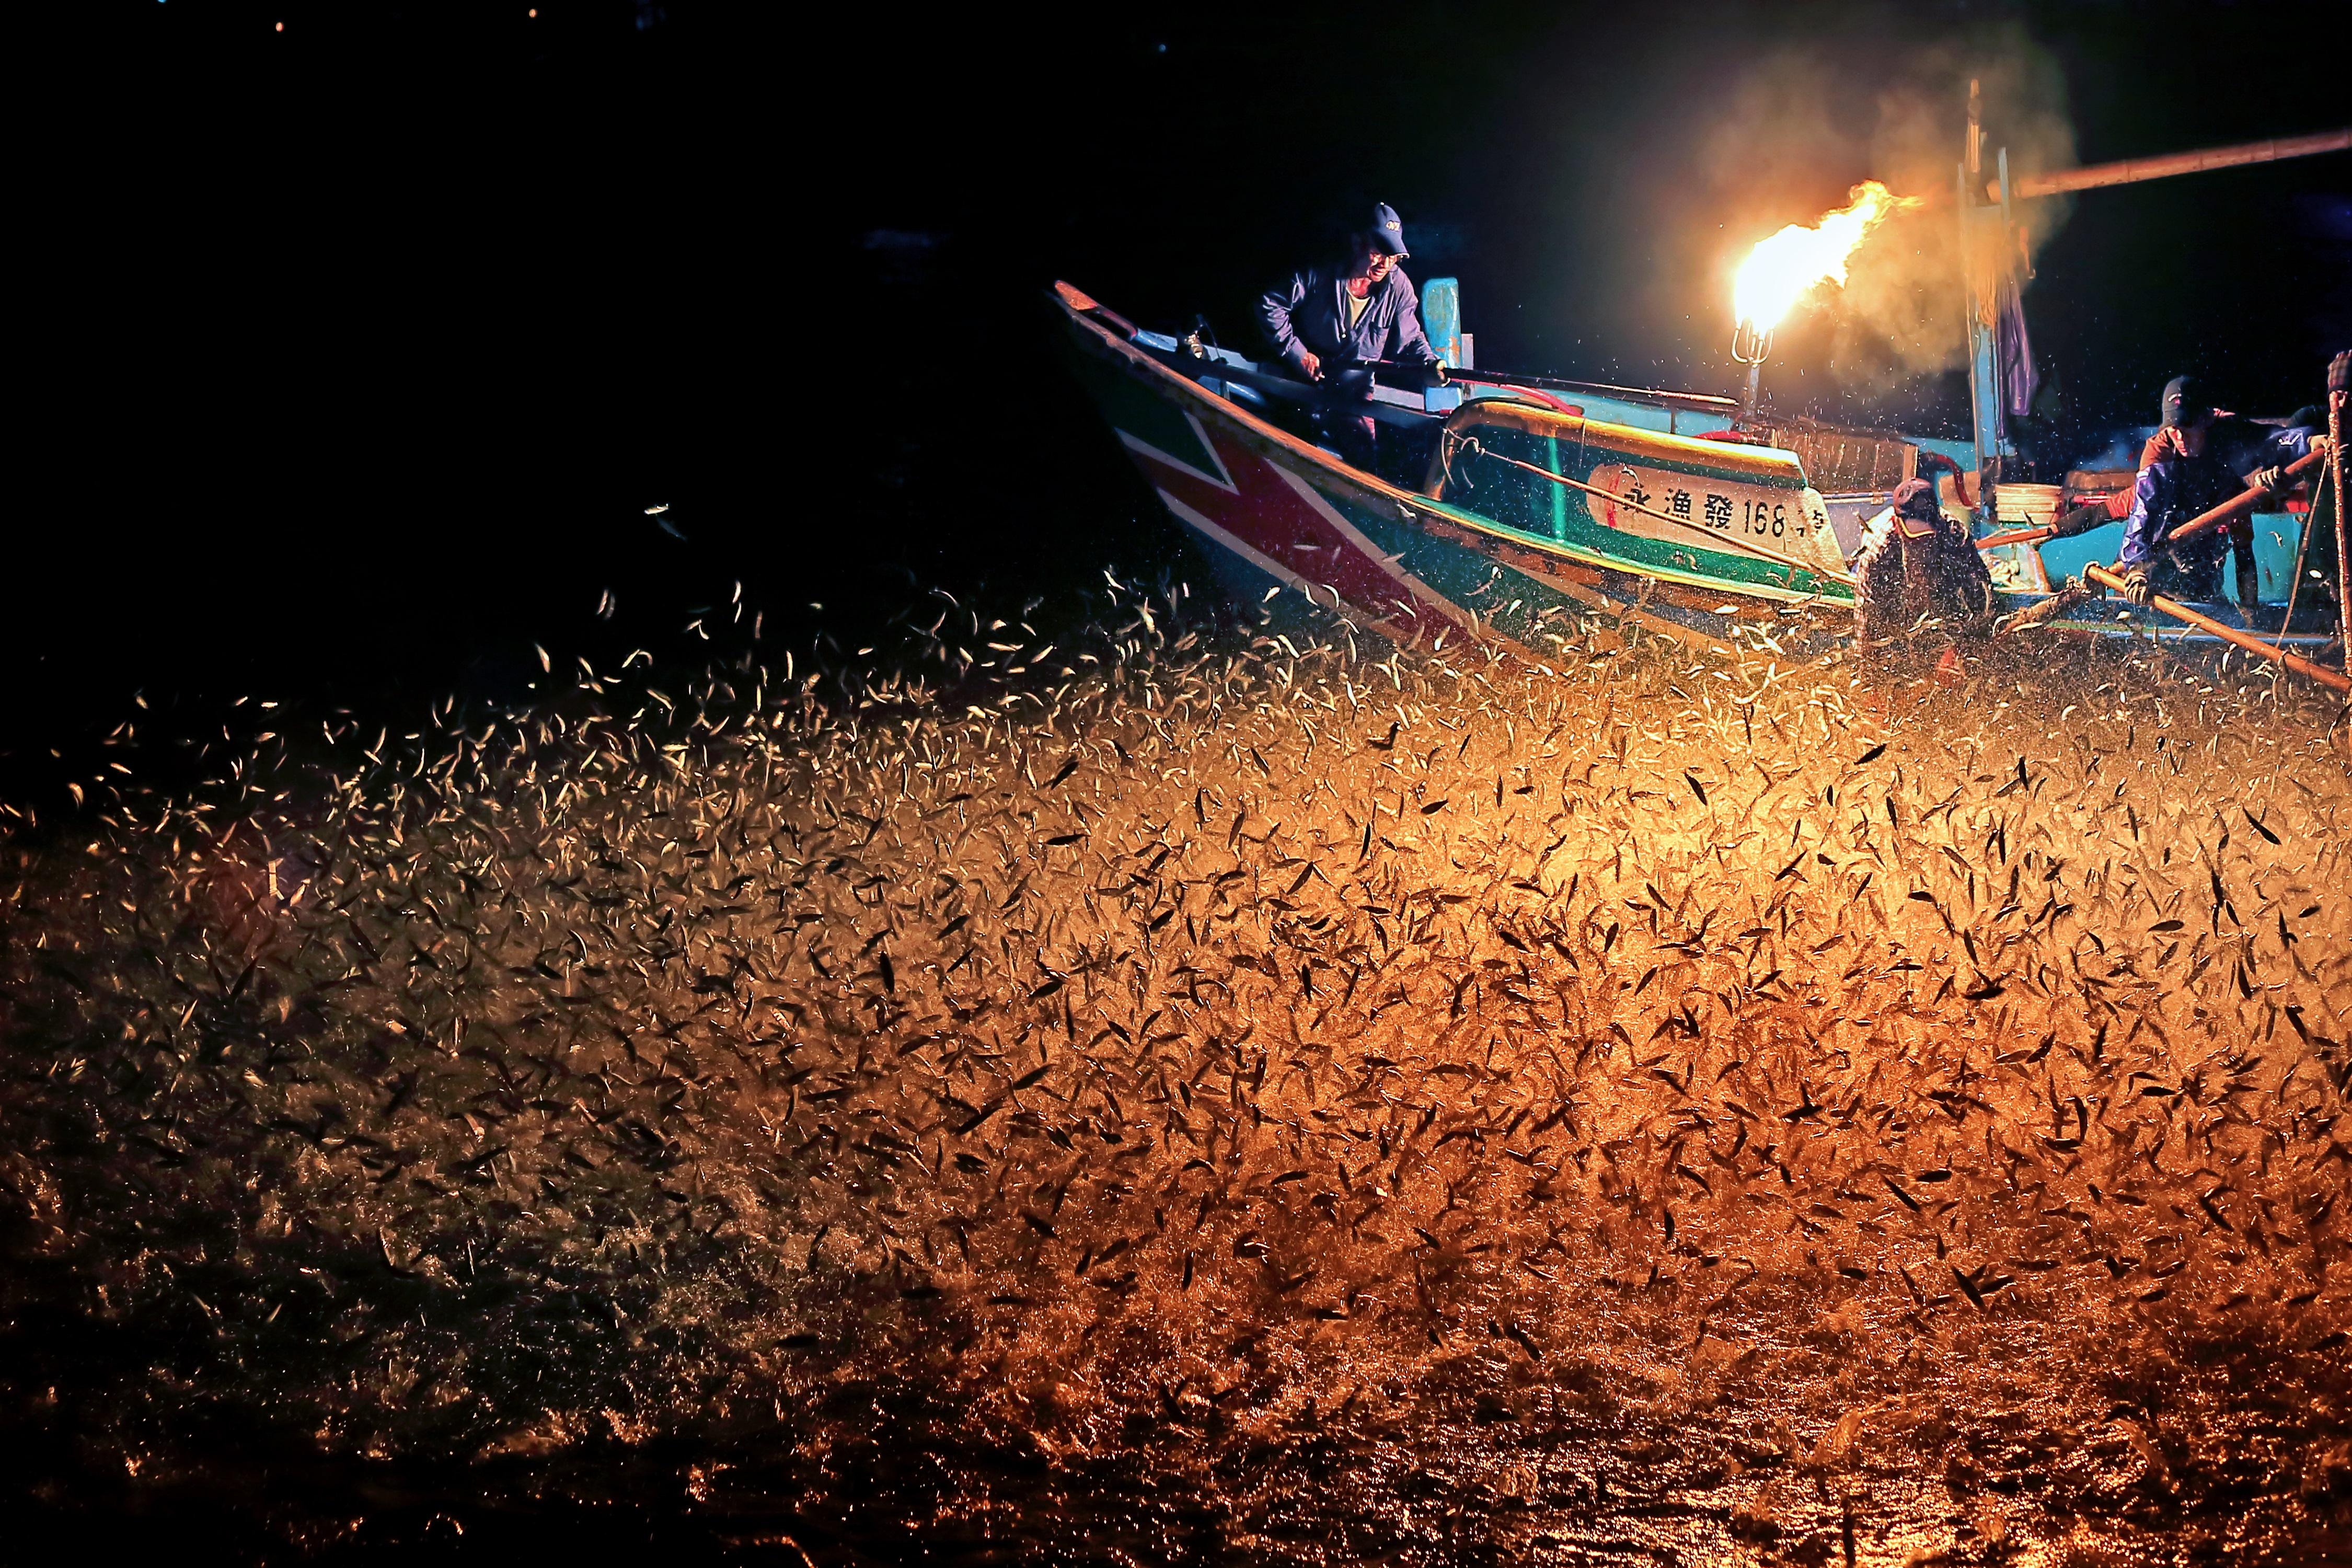 Fish-catching with sulfuric fire in Jinshan